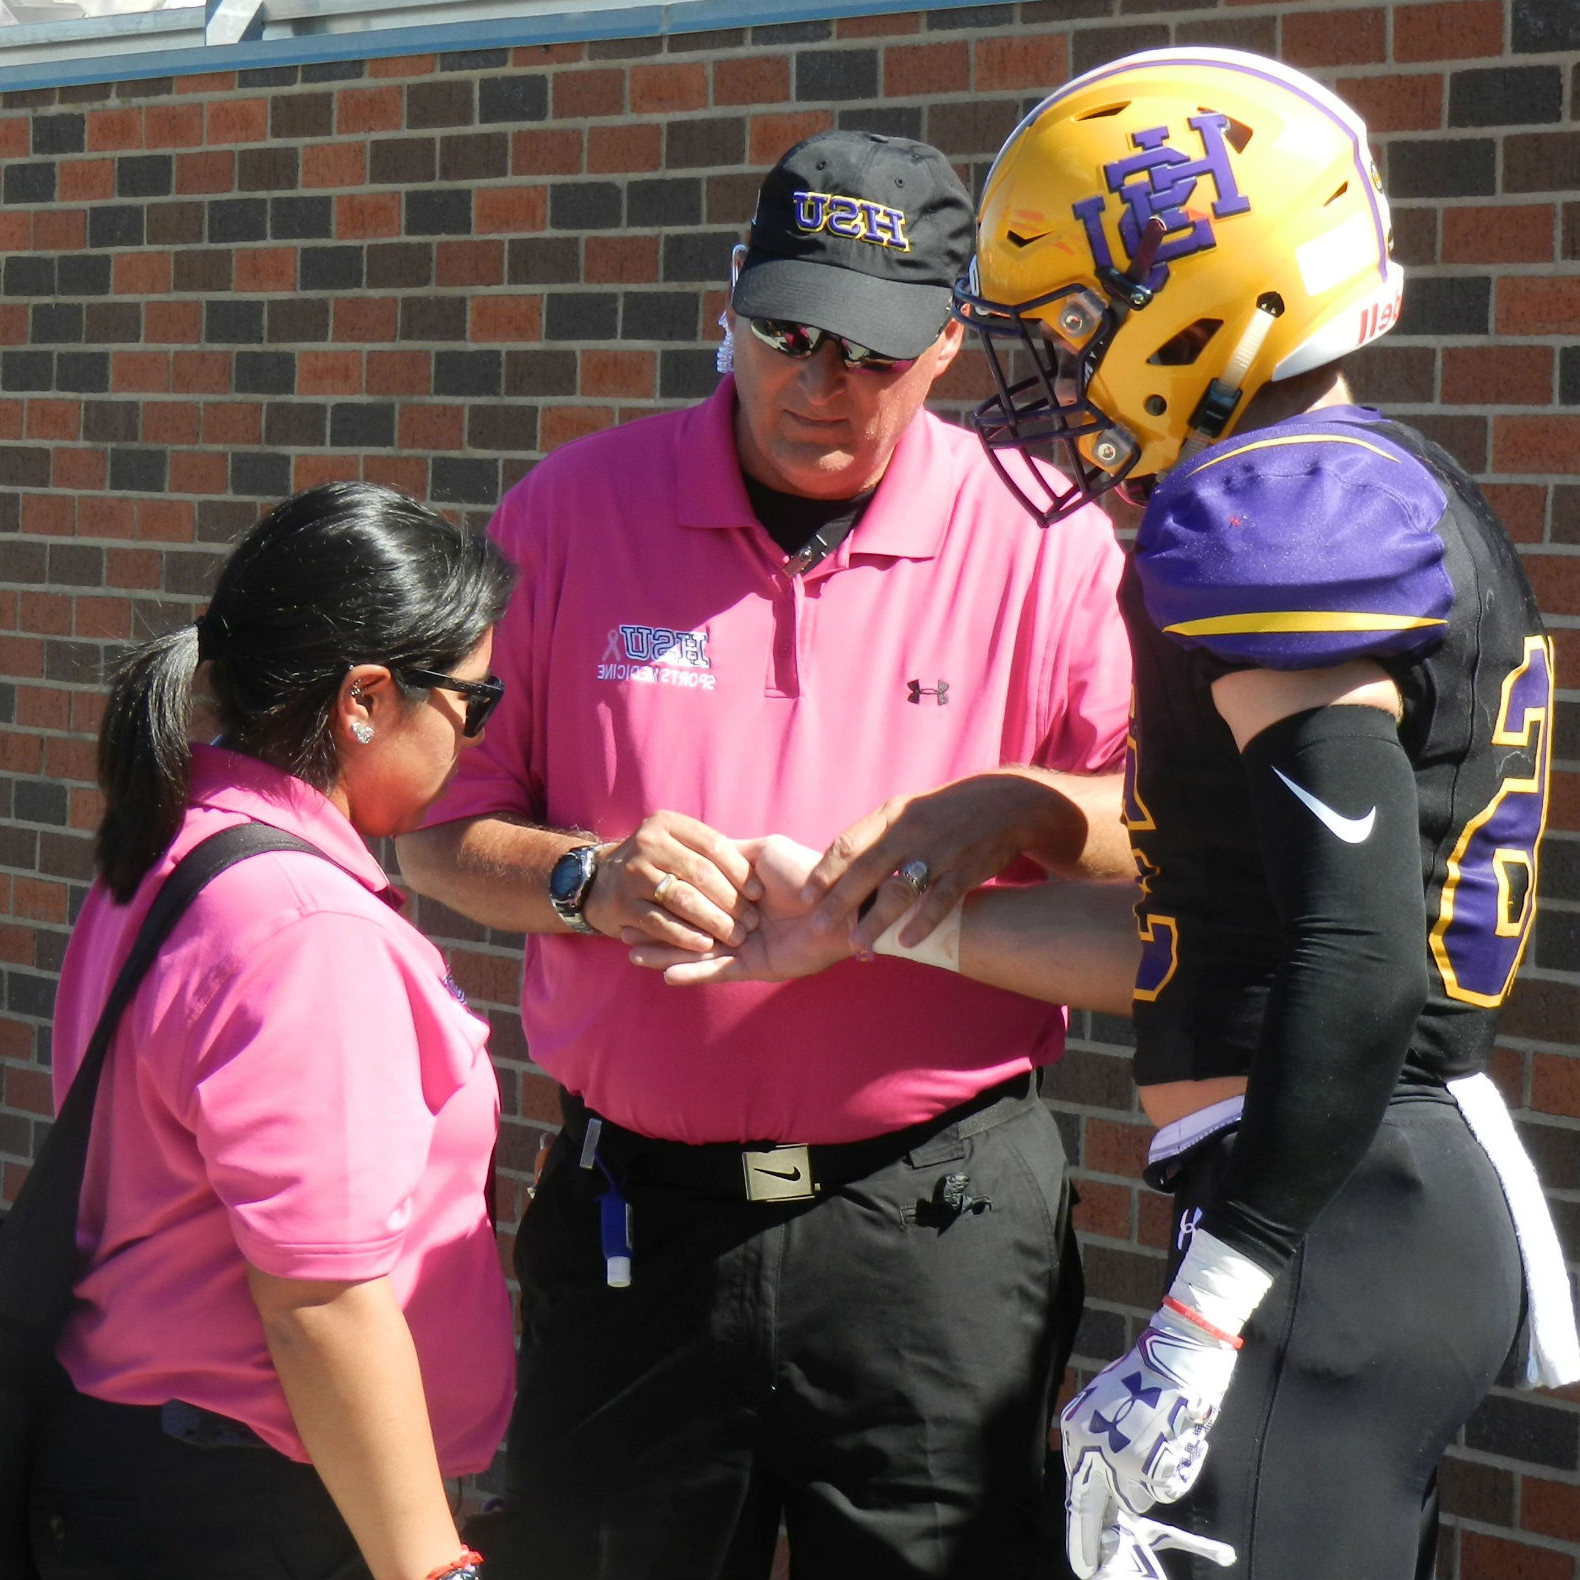 An athletic training professor wraps a football player's wrist as a student trainer observes.